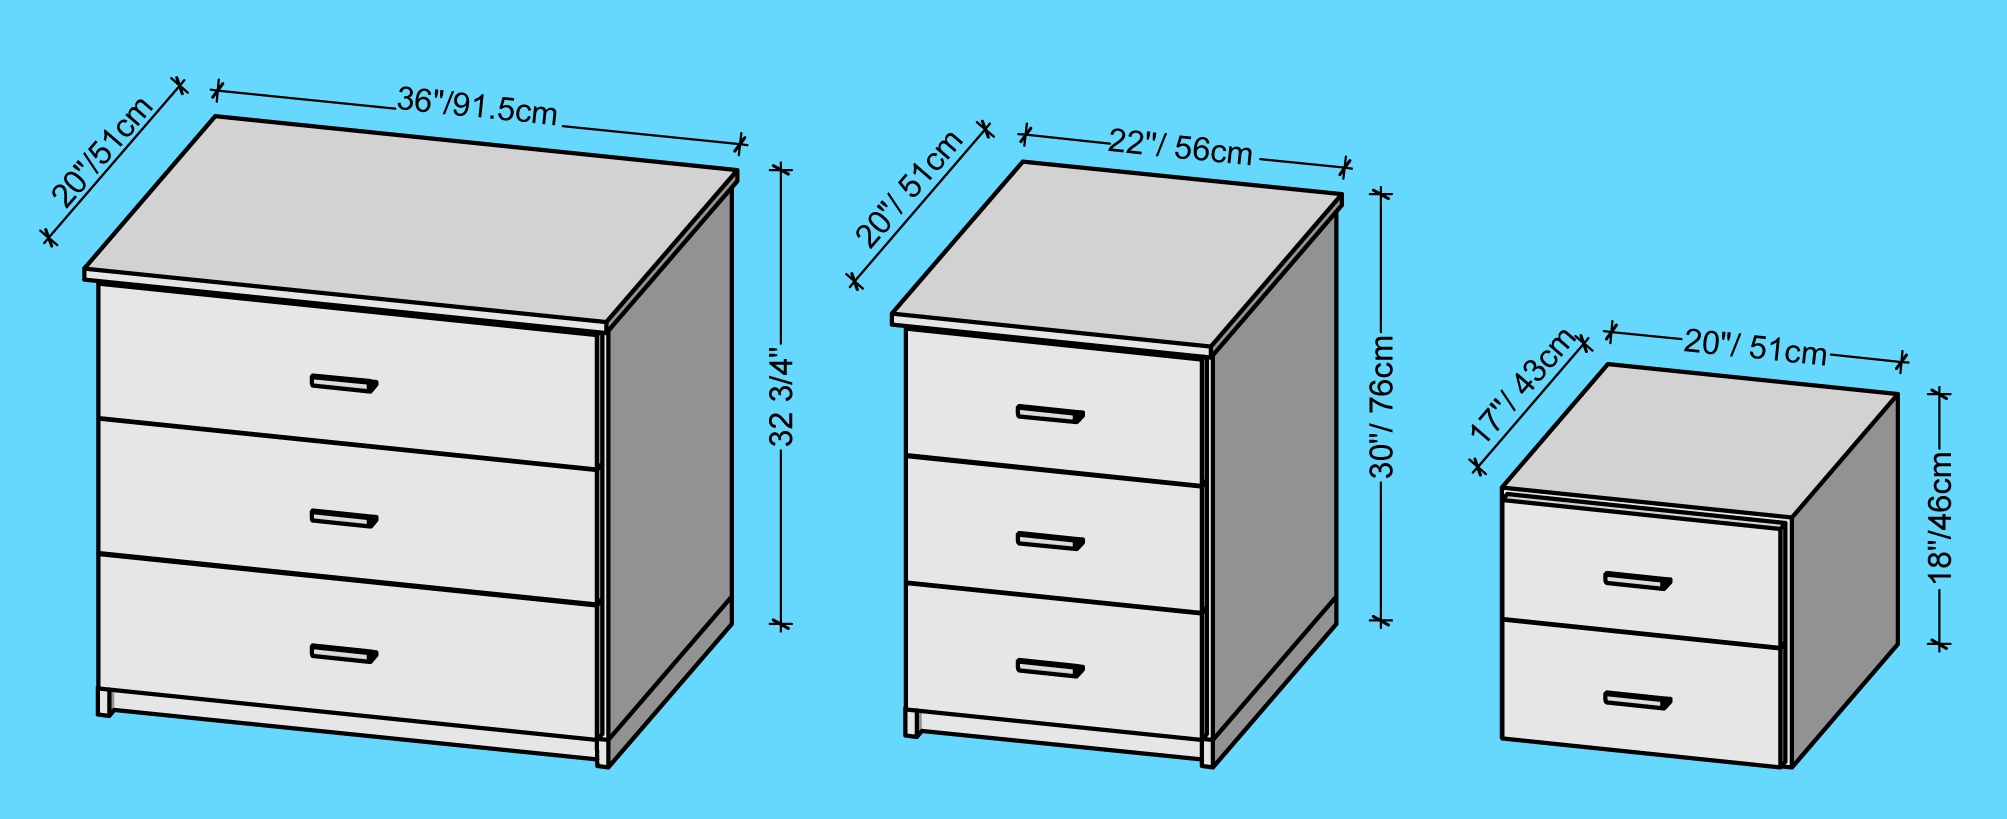 Bedside Tables Types And Measurements